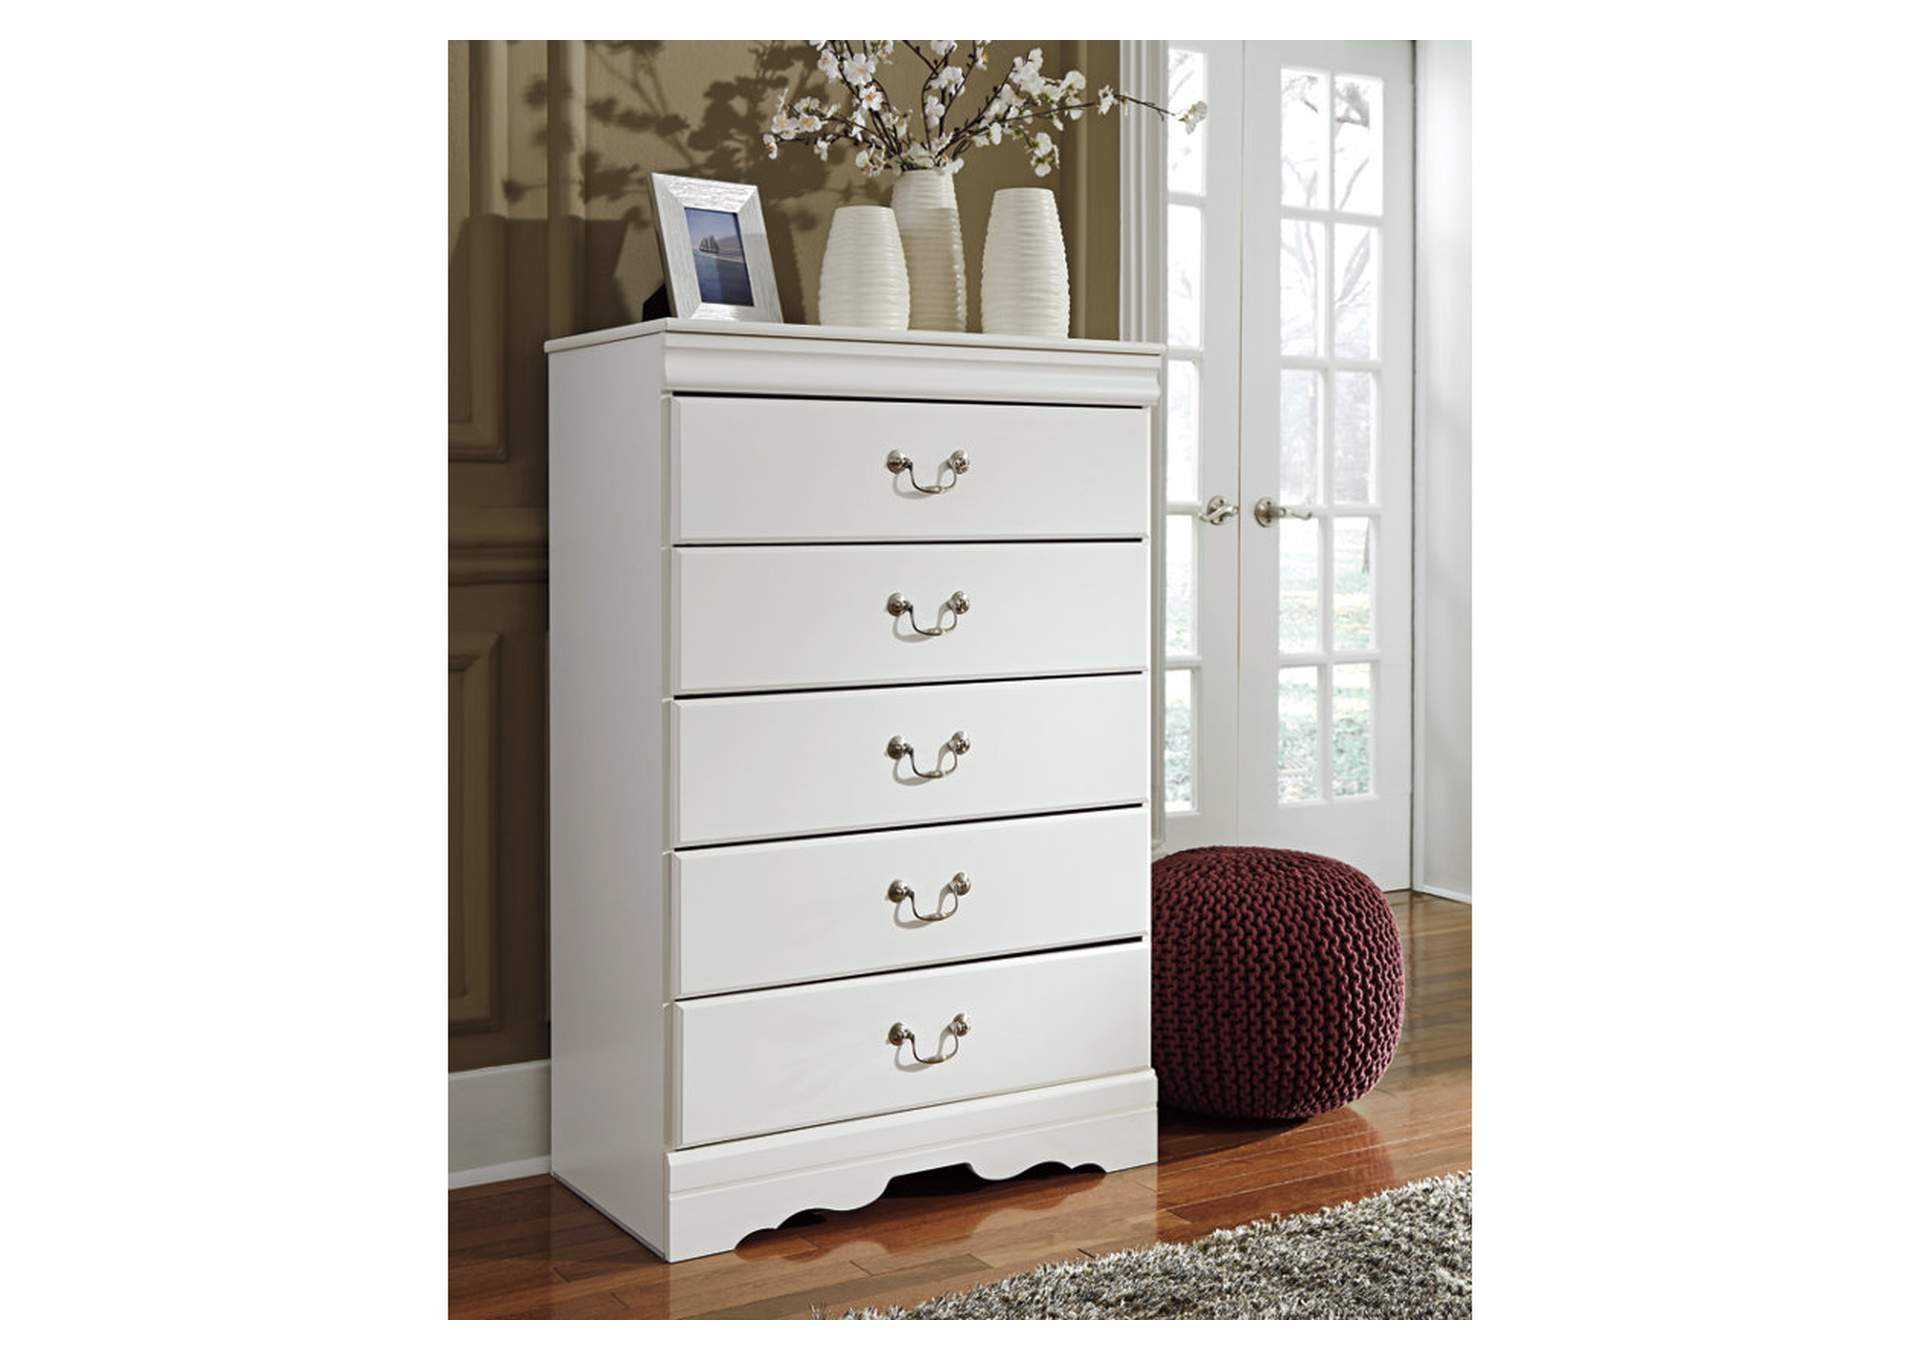 Anarasia White 5 Drawer Chest,Signature Design By Ashley